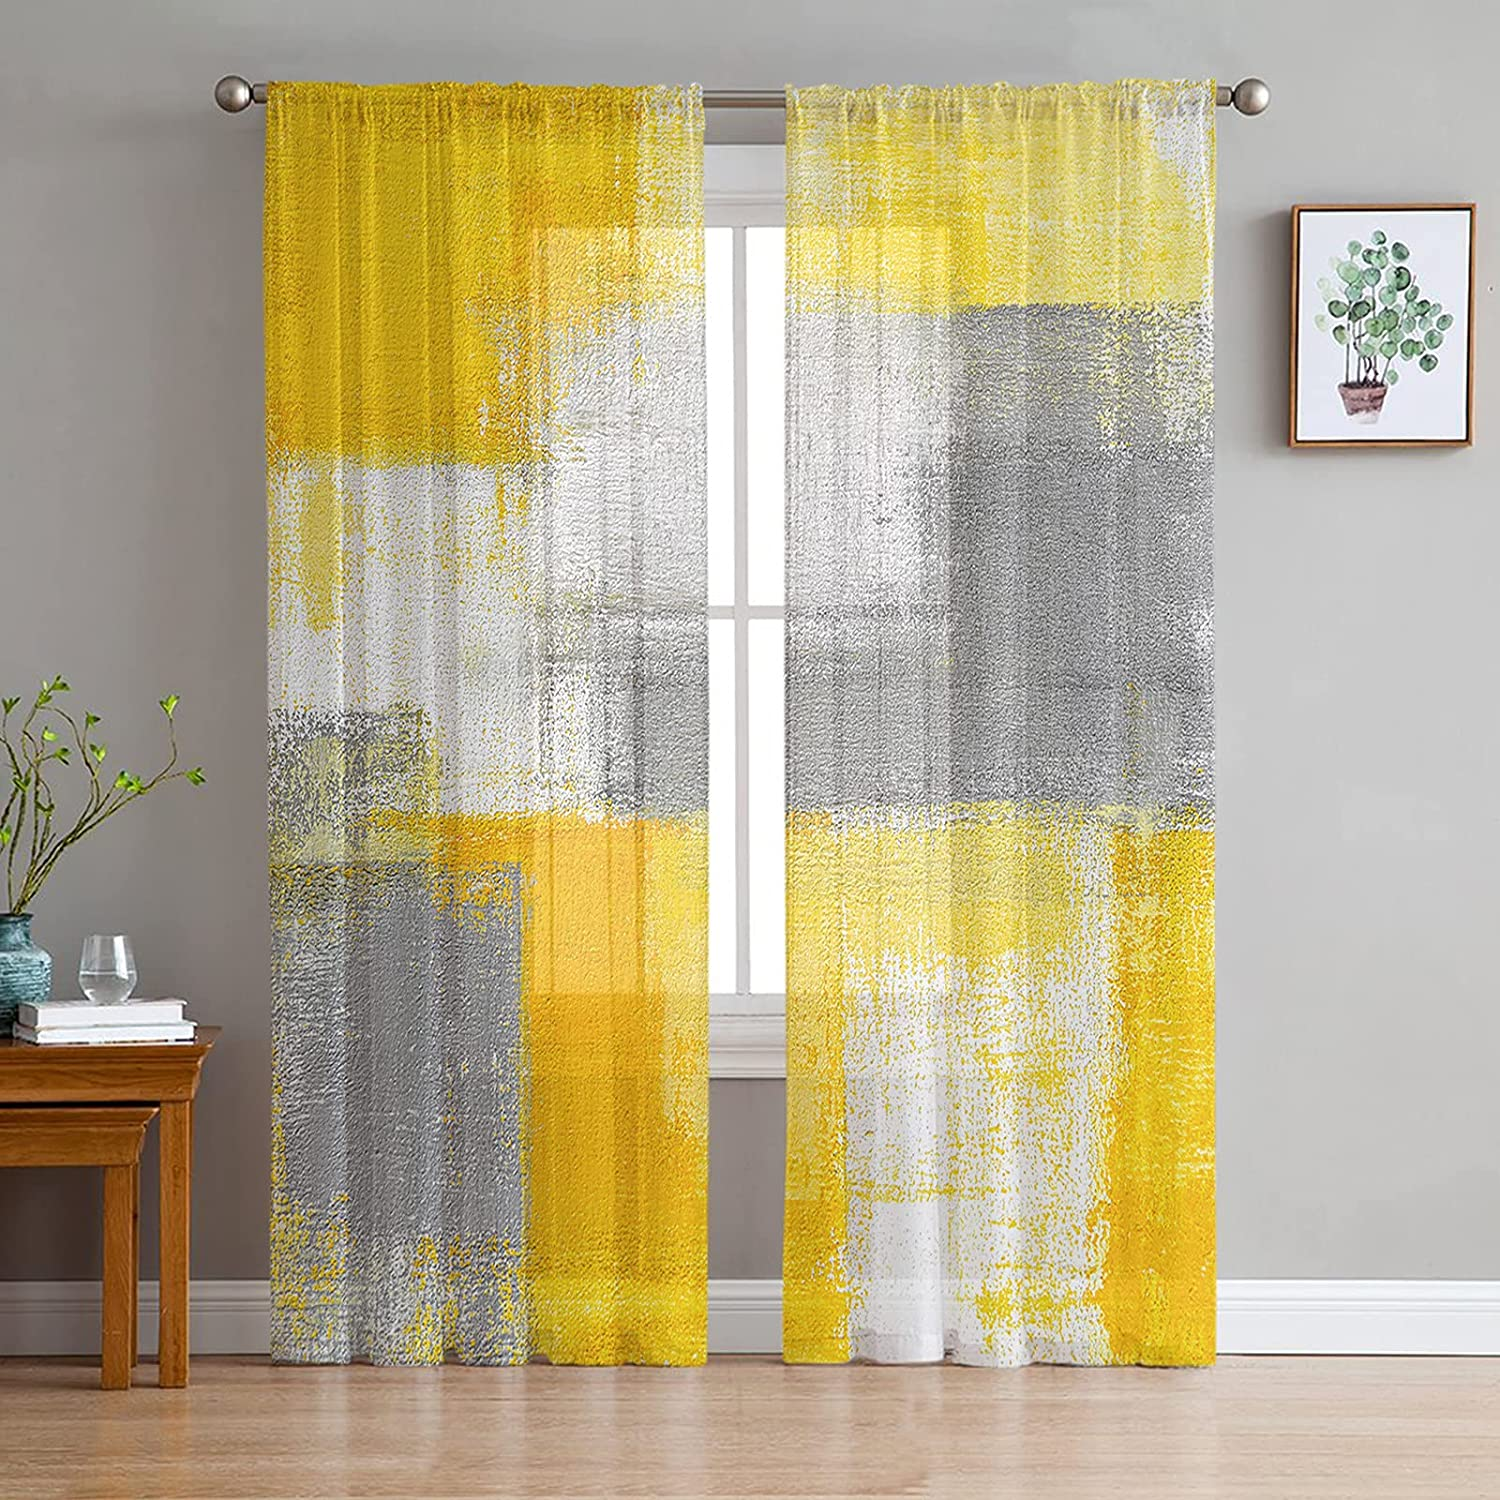 2 Panels Max 44% OFF Sheer Curtains Light Abstrac Filtering Drapes Topics on TV Geometric